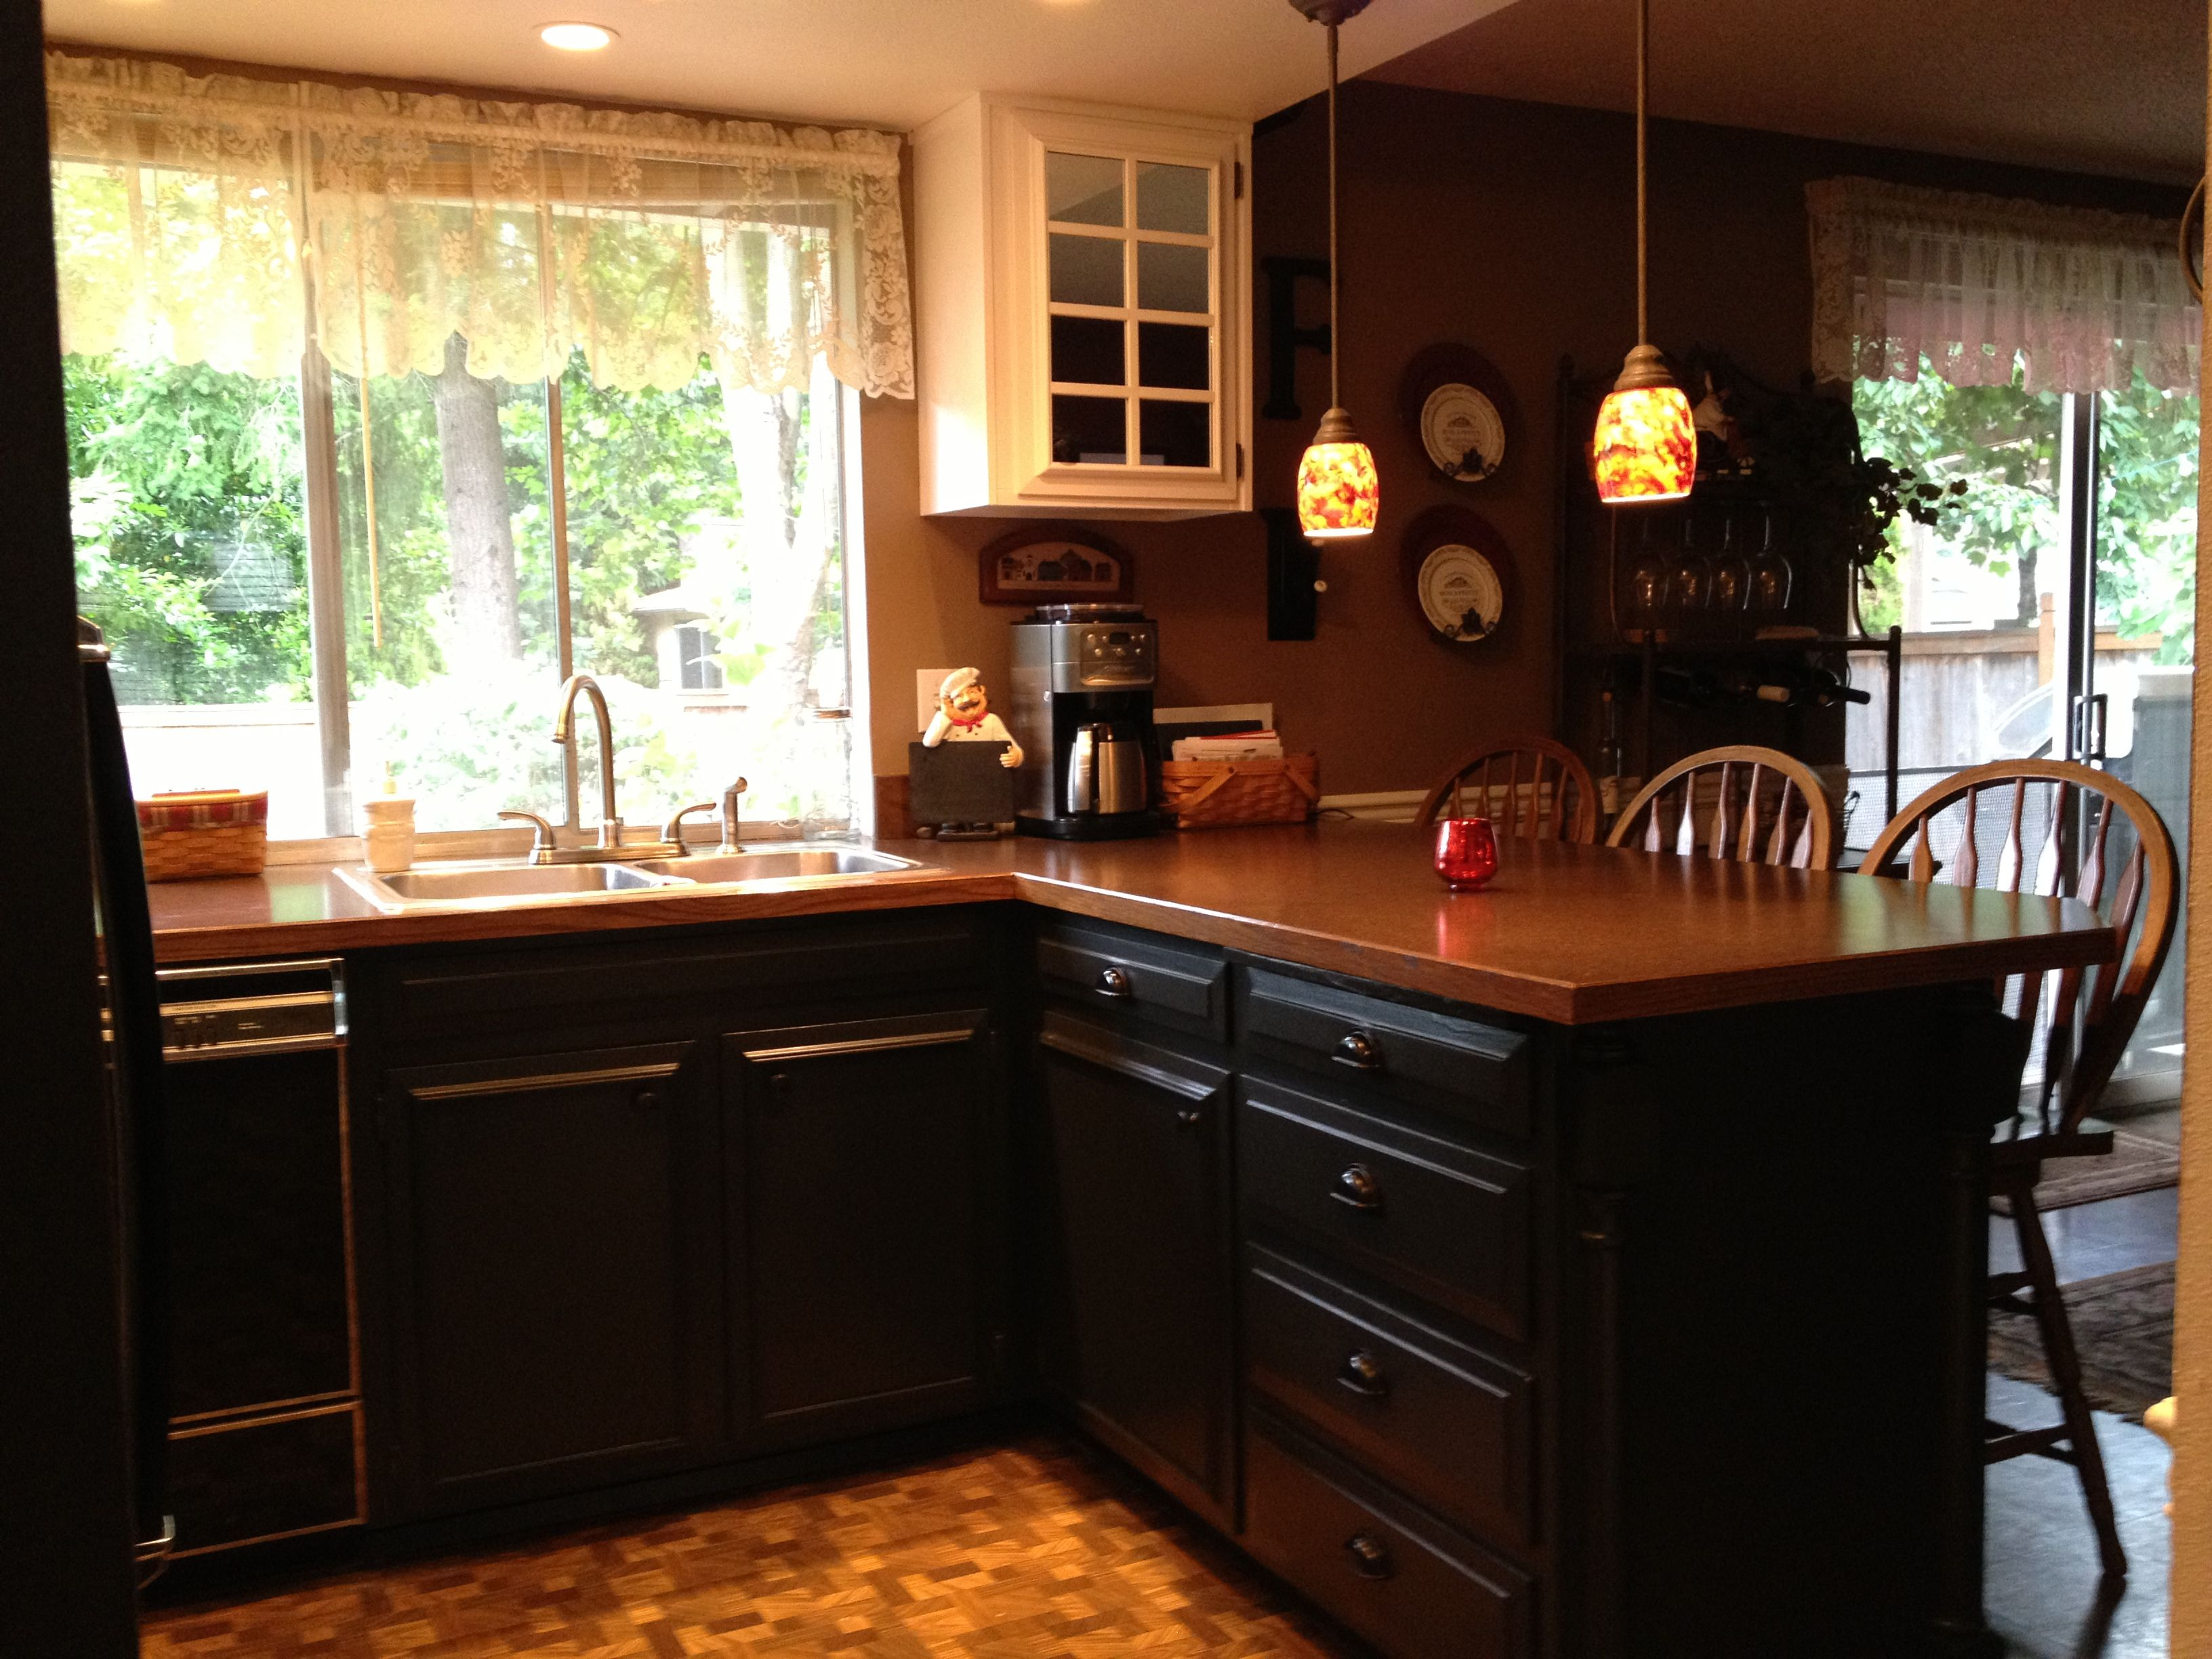 mesmerizing 10 behr kitchen cabinet paint inspiration desig